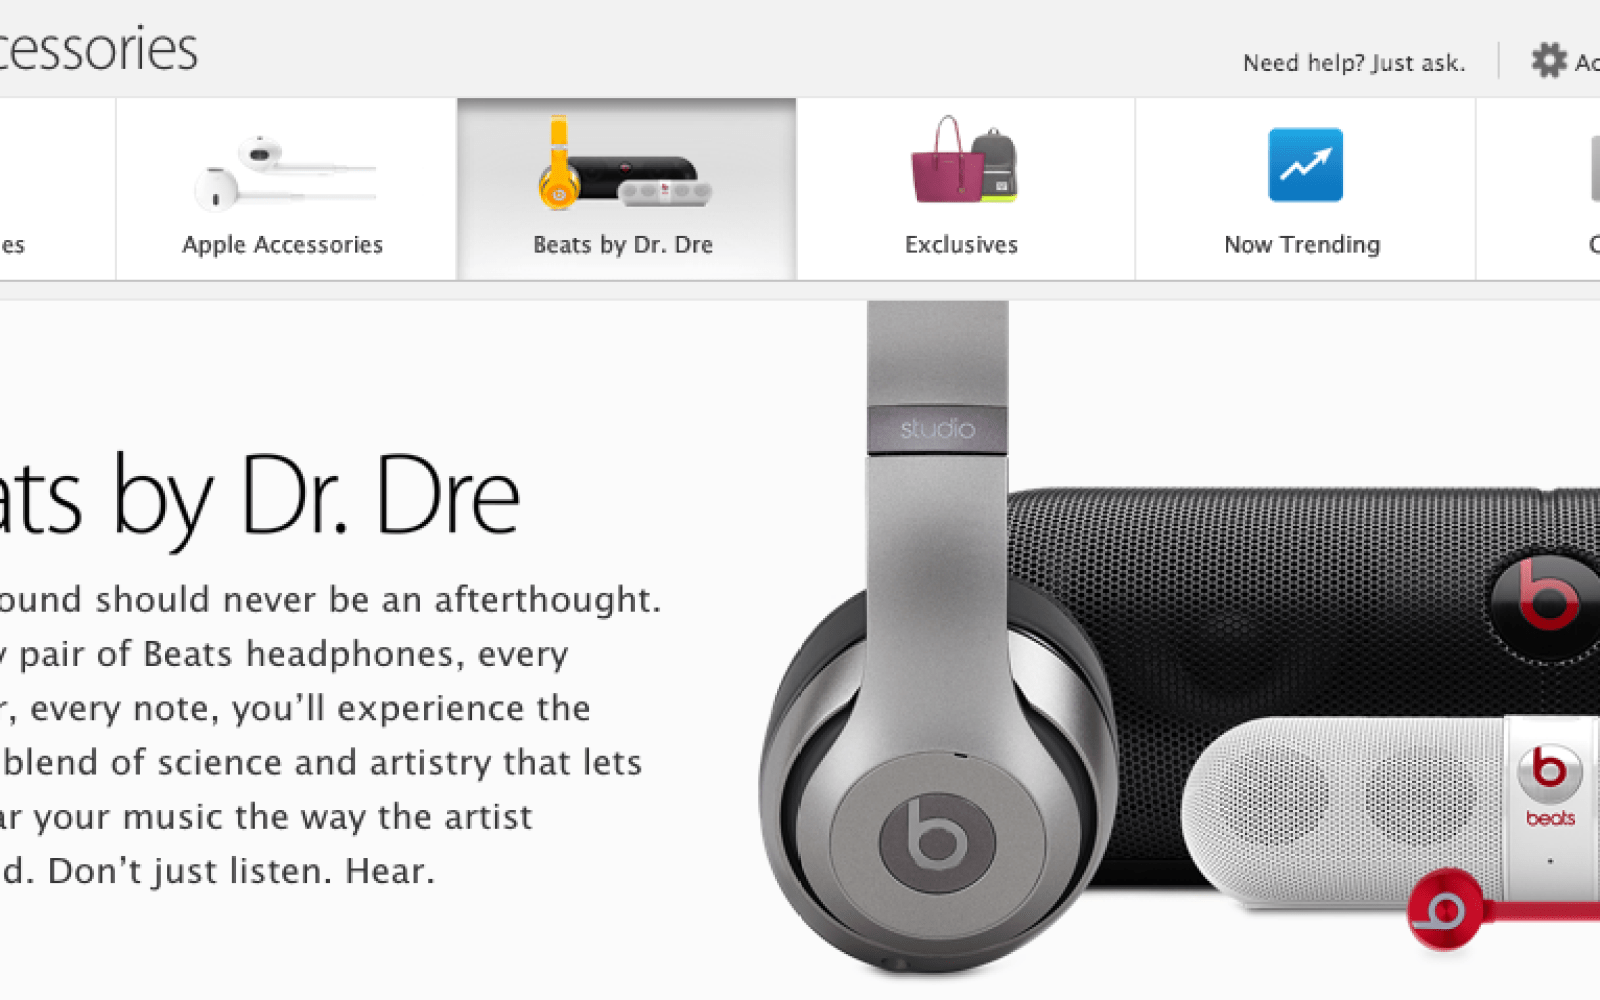 Apple gives newly acquired Beats by Dre dedicated accessories section on online store